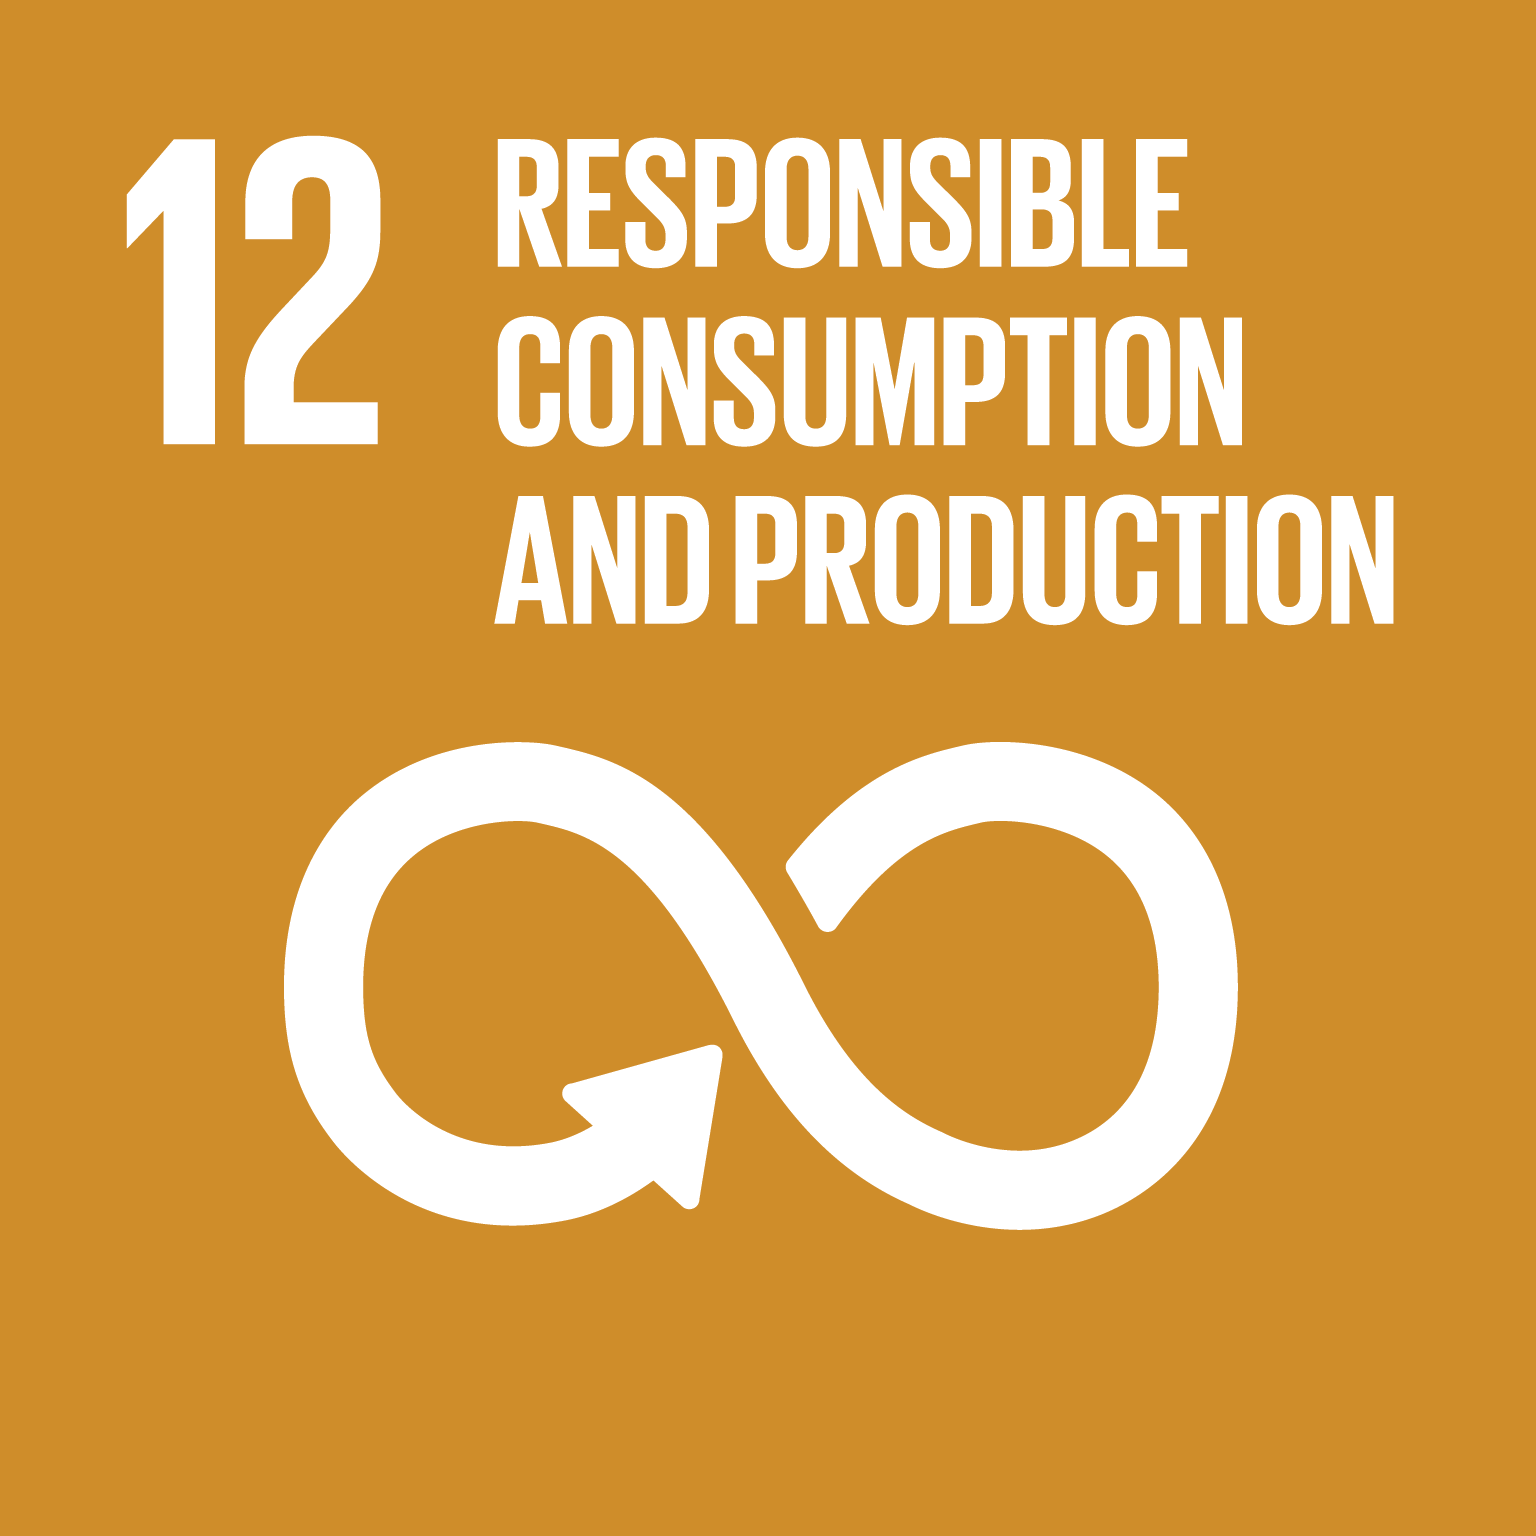 Responsible Consumption and Production - Ensure sustainable consumption and production patterns